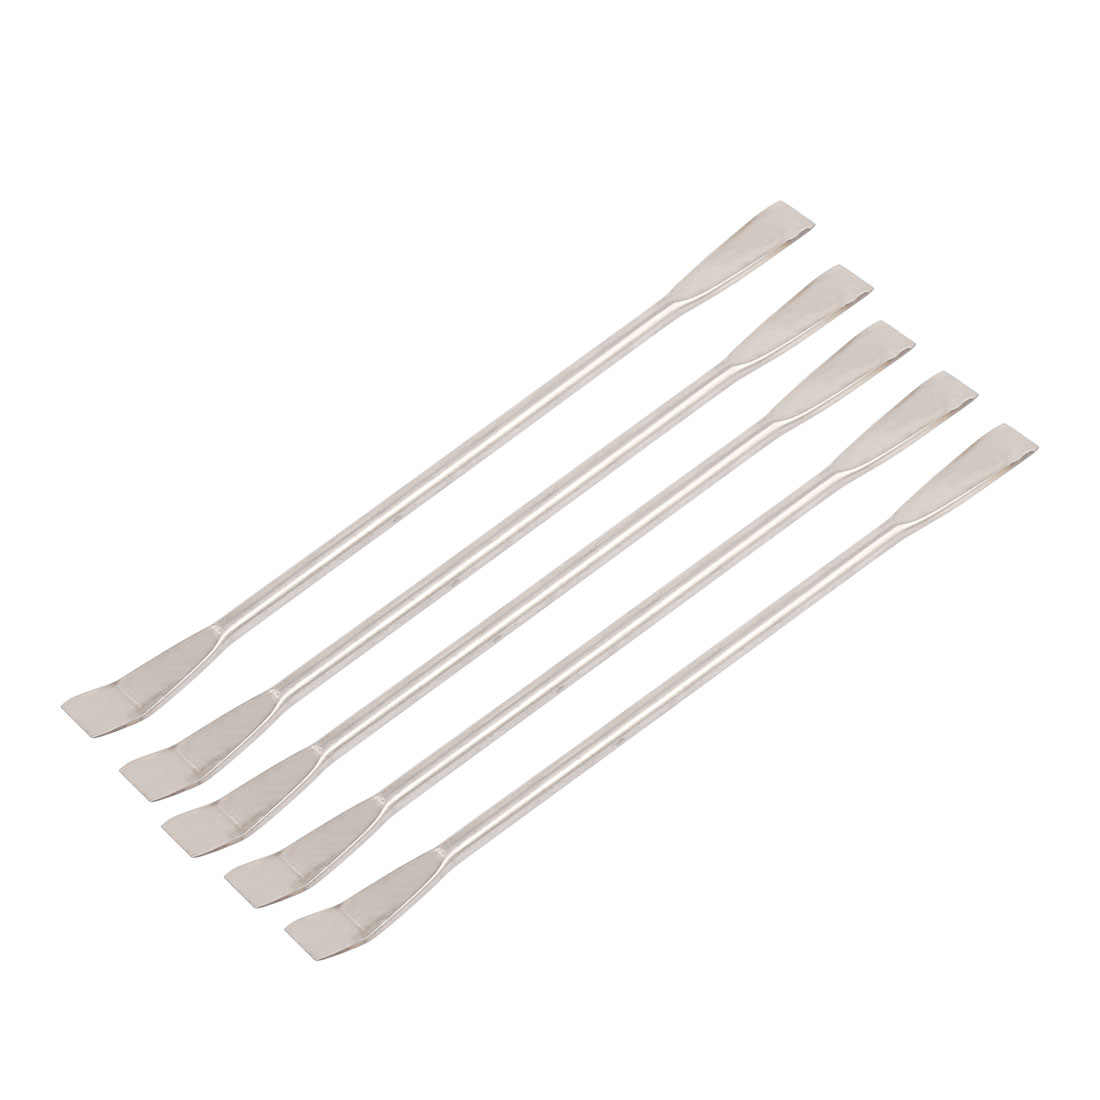 5Pcs 125mm Length Double Head Lab Instruments Stainless Steel Sampling Spatula